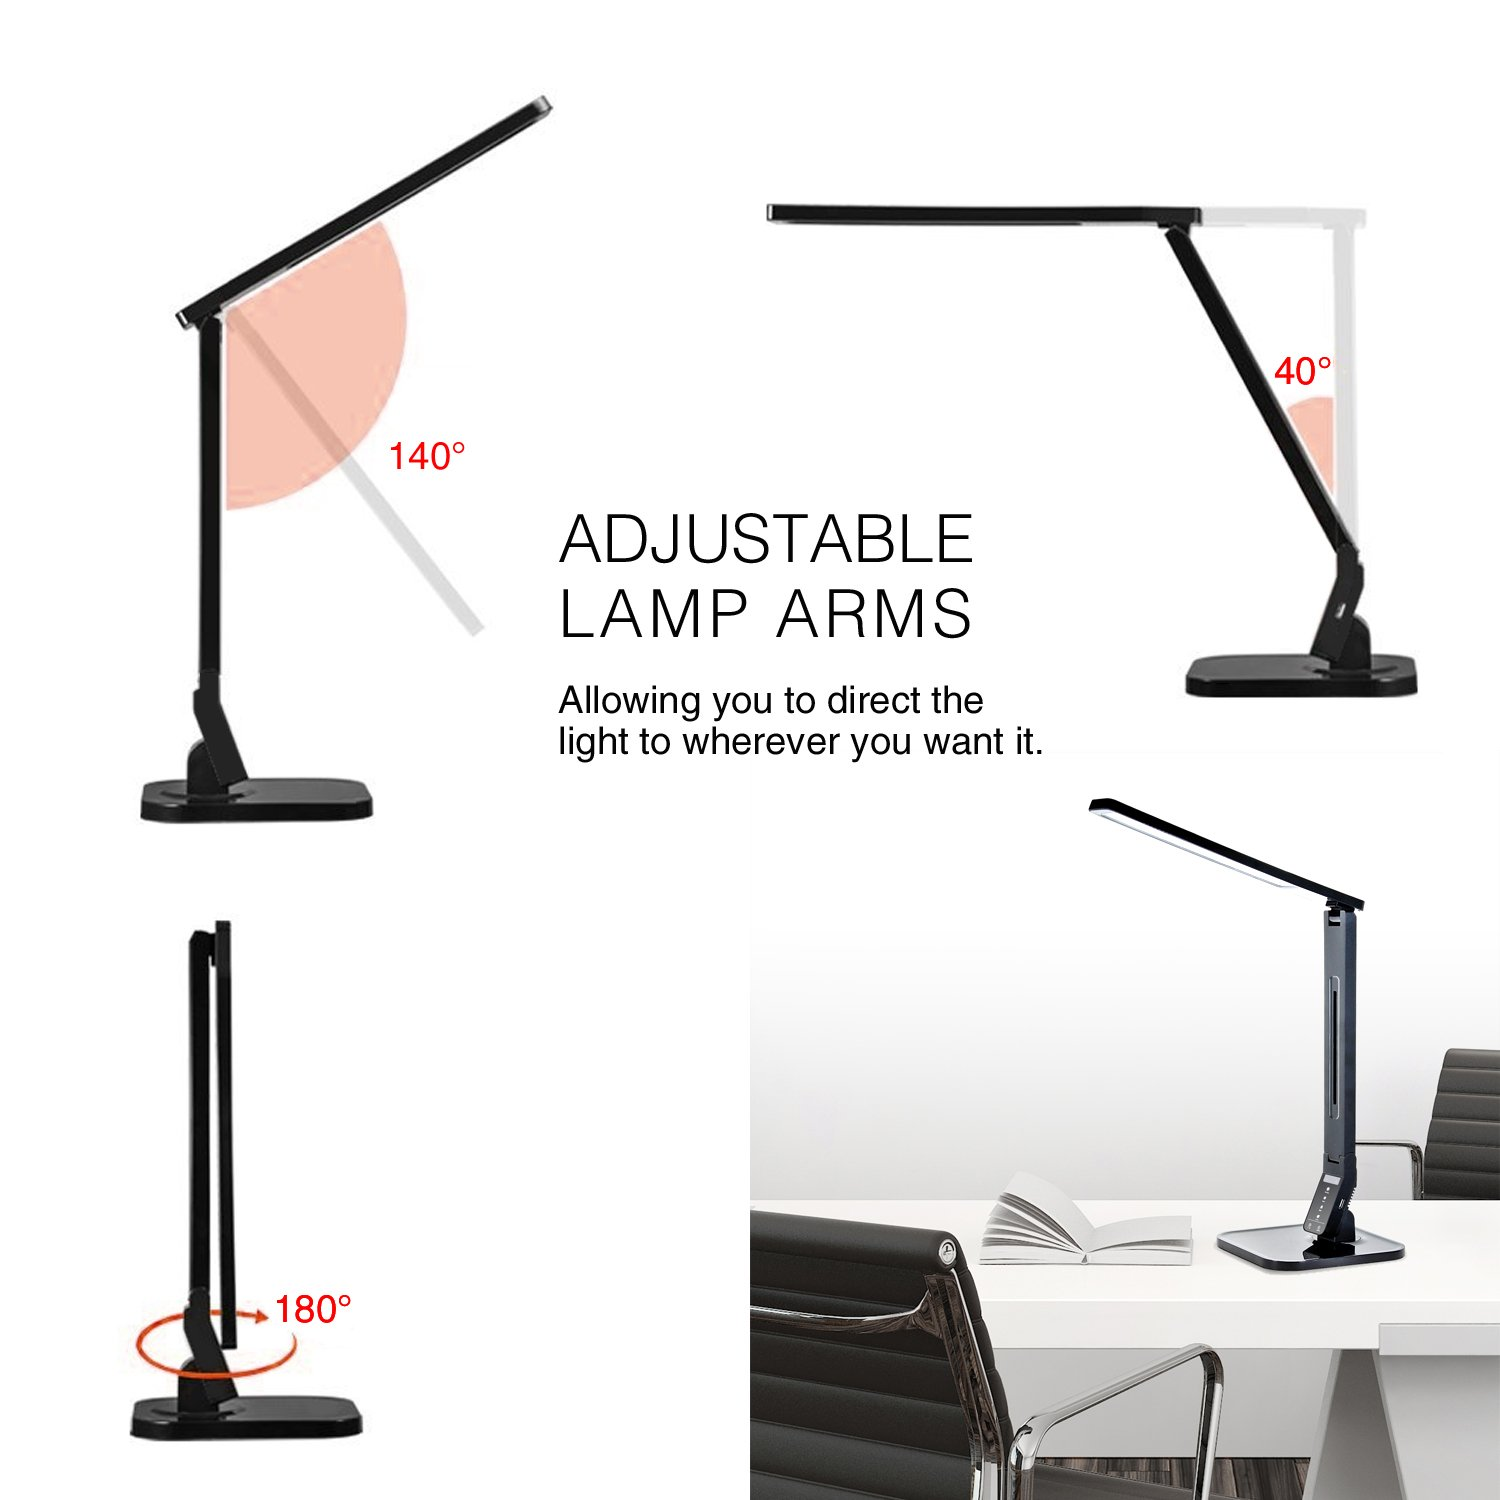 Tenergy 11W Dimmable Desk Lamp with USB Charging Port, LED Adjustable Lighting for Reading, 5 Brightness Levels 4 Light Colors Table Light by Tenergy (Image #5)